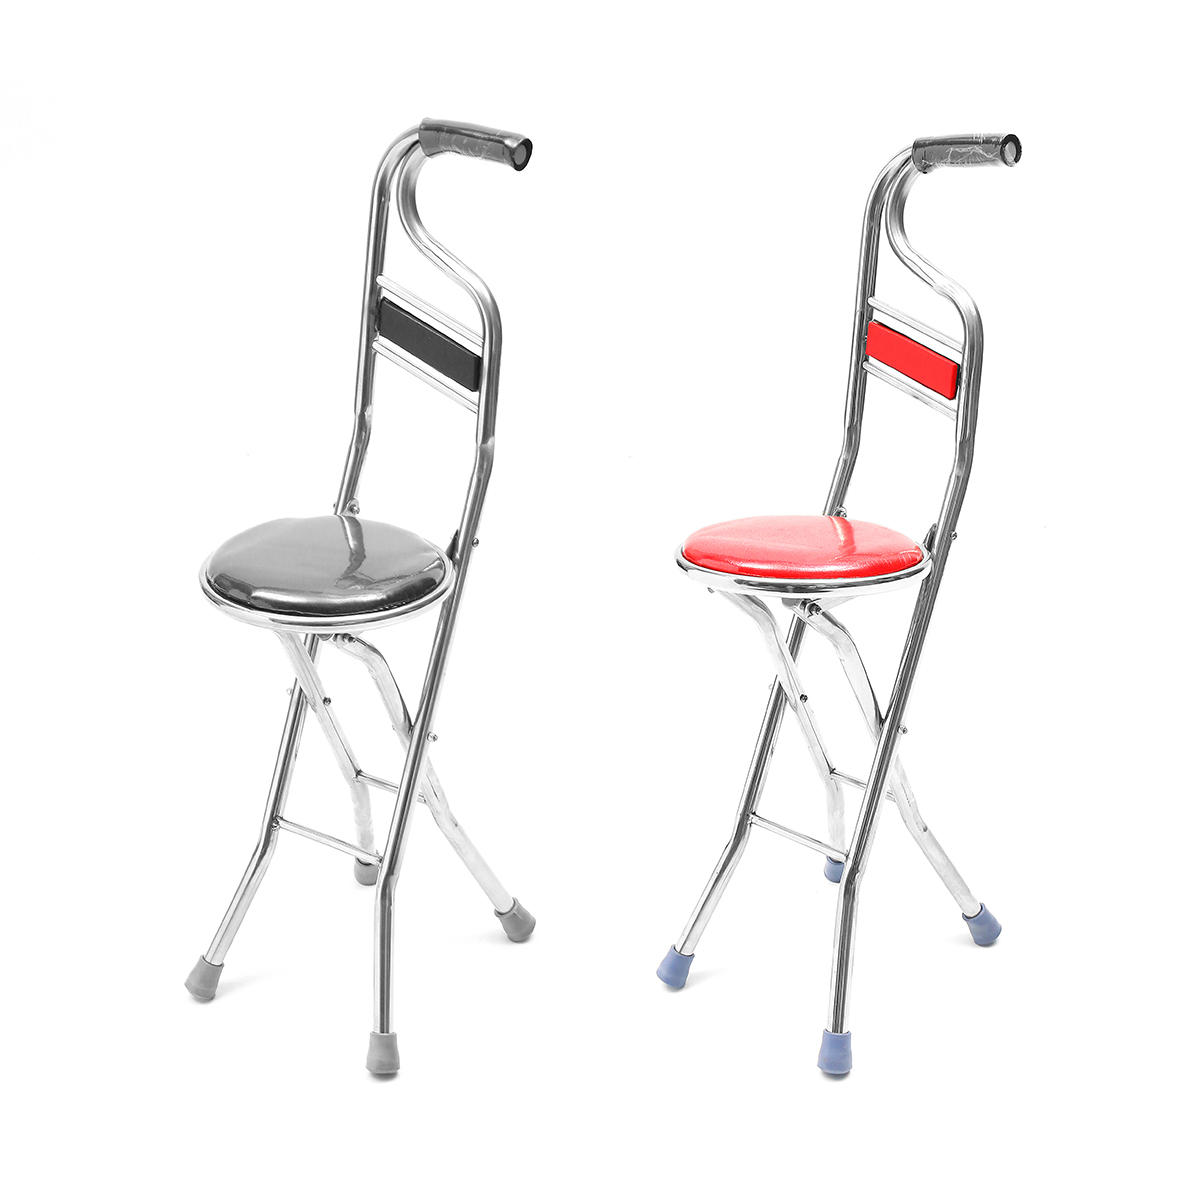 Pleasing Stainless Steel Portable Folding Walking Stick Chair Seat Stool Travel Cane Creativecarmelina Interior Chair Design Creativecarmelinacom